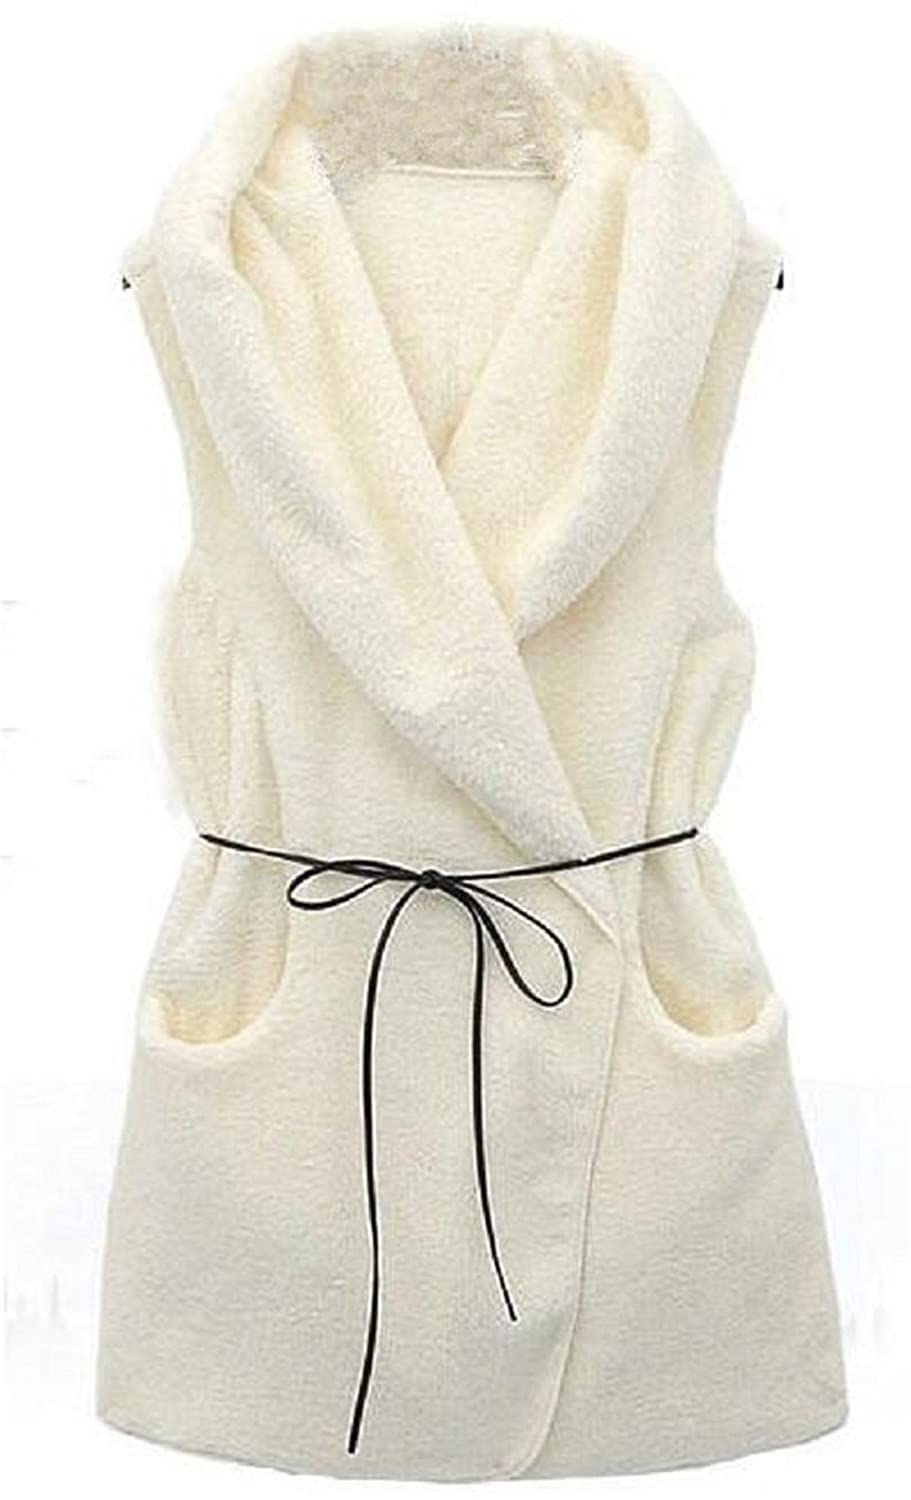 Allonly Women's Faux Wool Warm Vest Jacket Coat ALLNQIU0185A